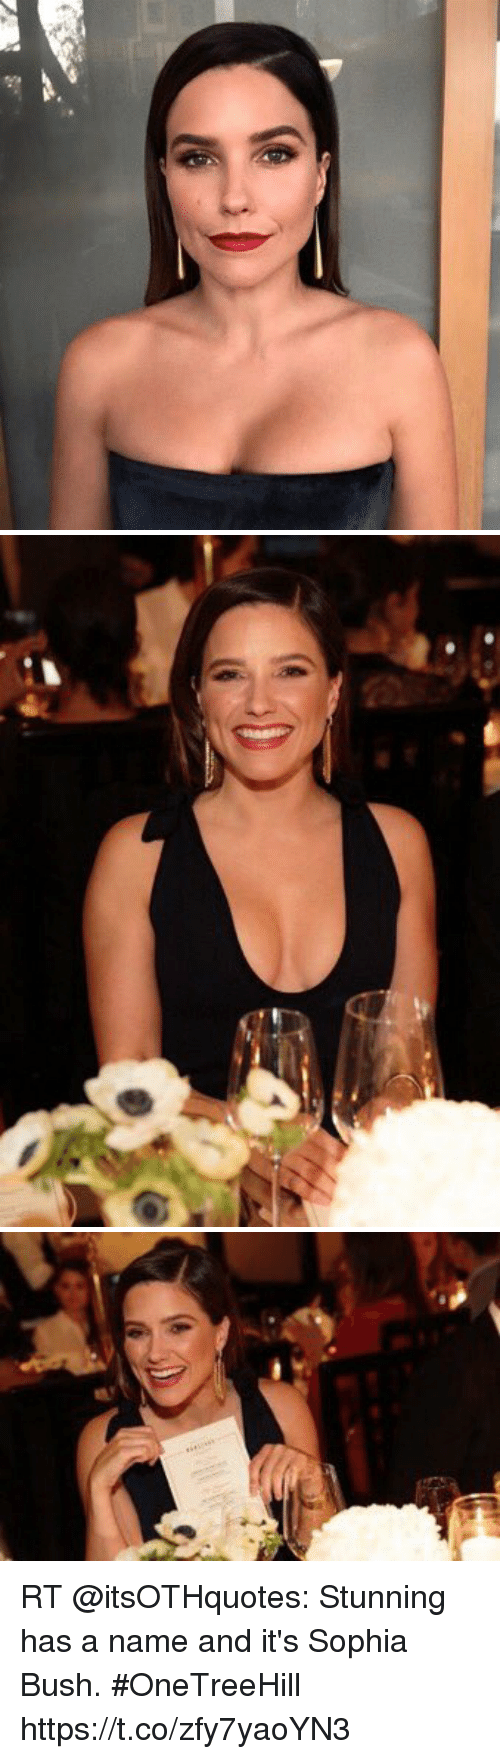 sophia bush: RT @itsOTHquotes: Stunning has a name and it's Sophia Bush. #OneTreeHill https://t.co/zfy7yaoYN3